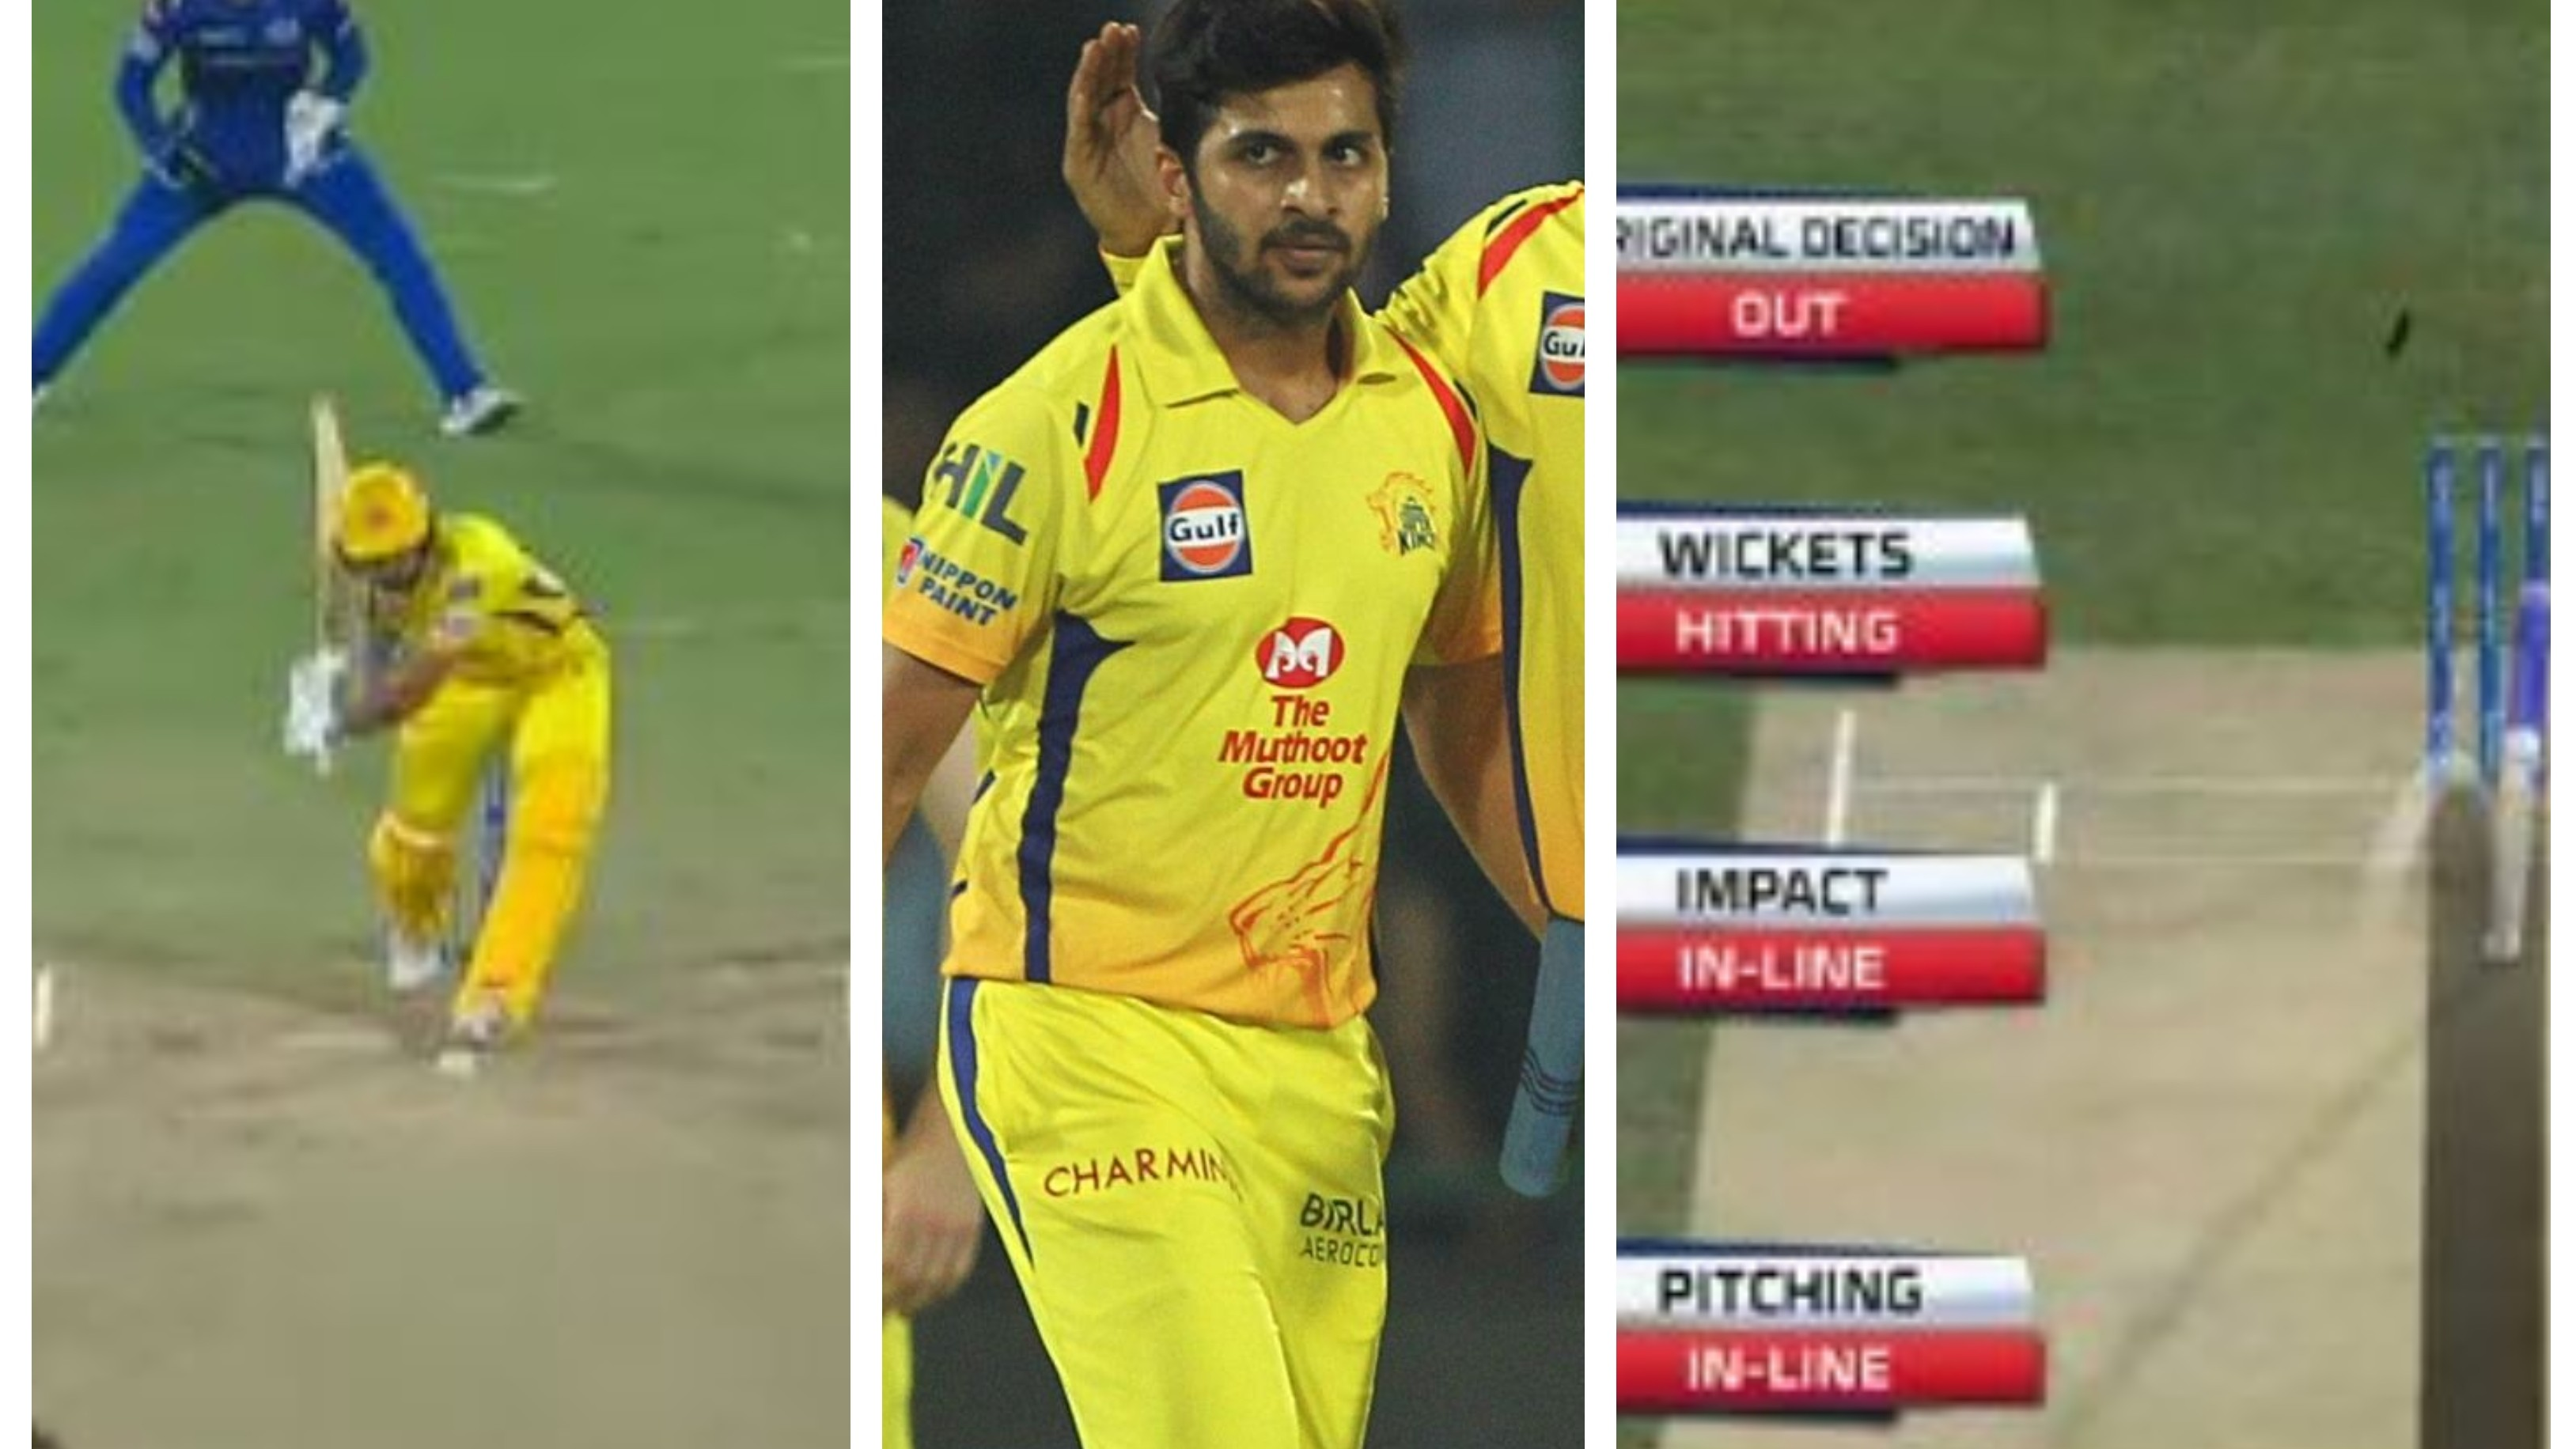 IPL 2019: Shardul Thakur reflects back at his last ball dismissal in the IPL final